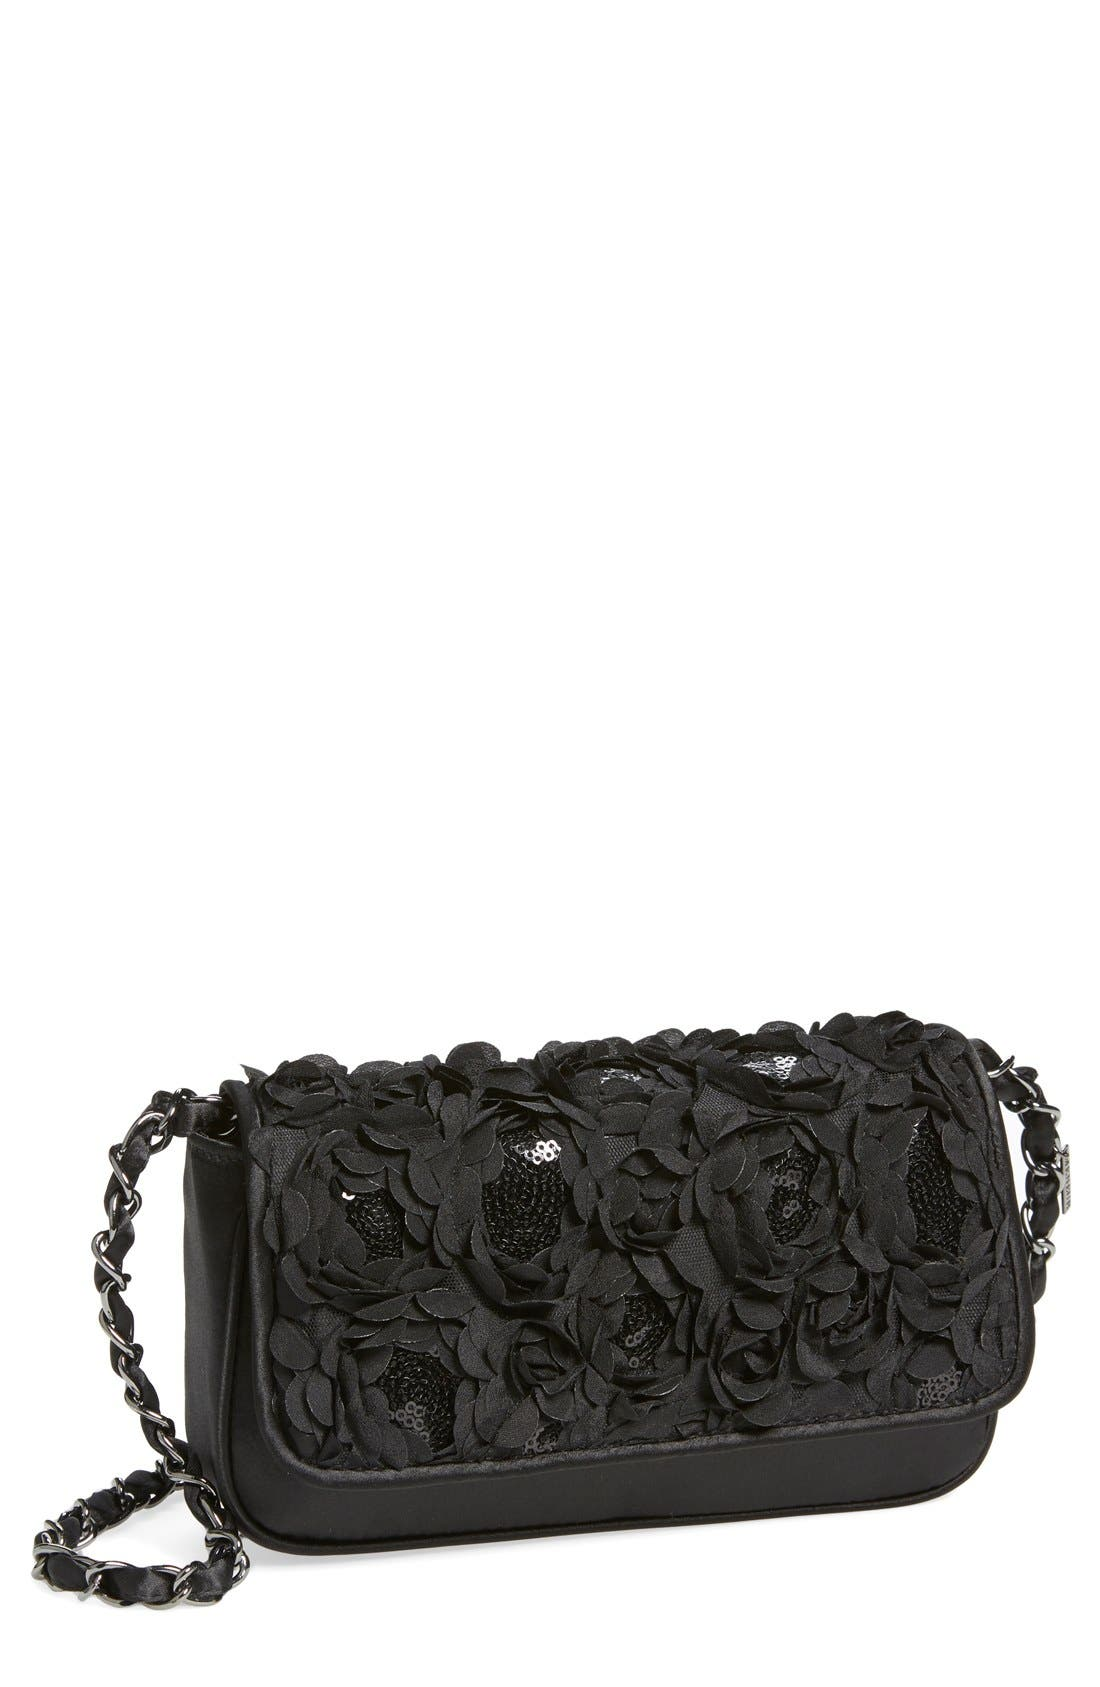 'Lassus' Satin Clutch,                         Main,                         color,